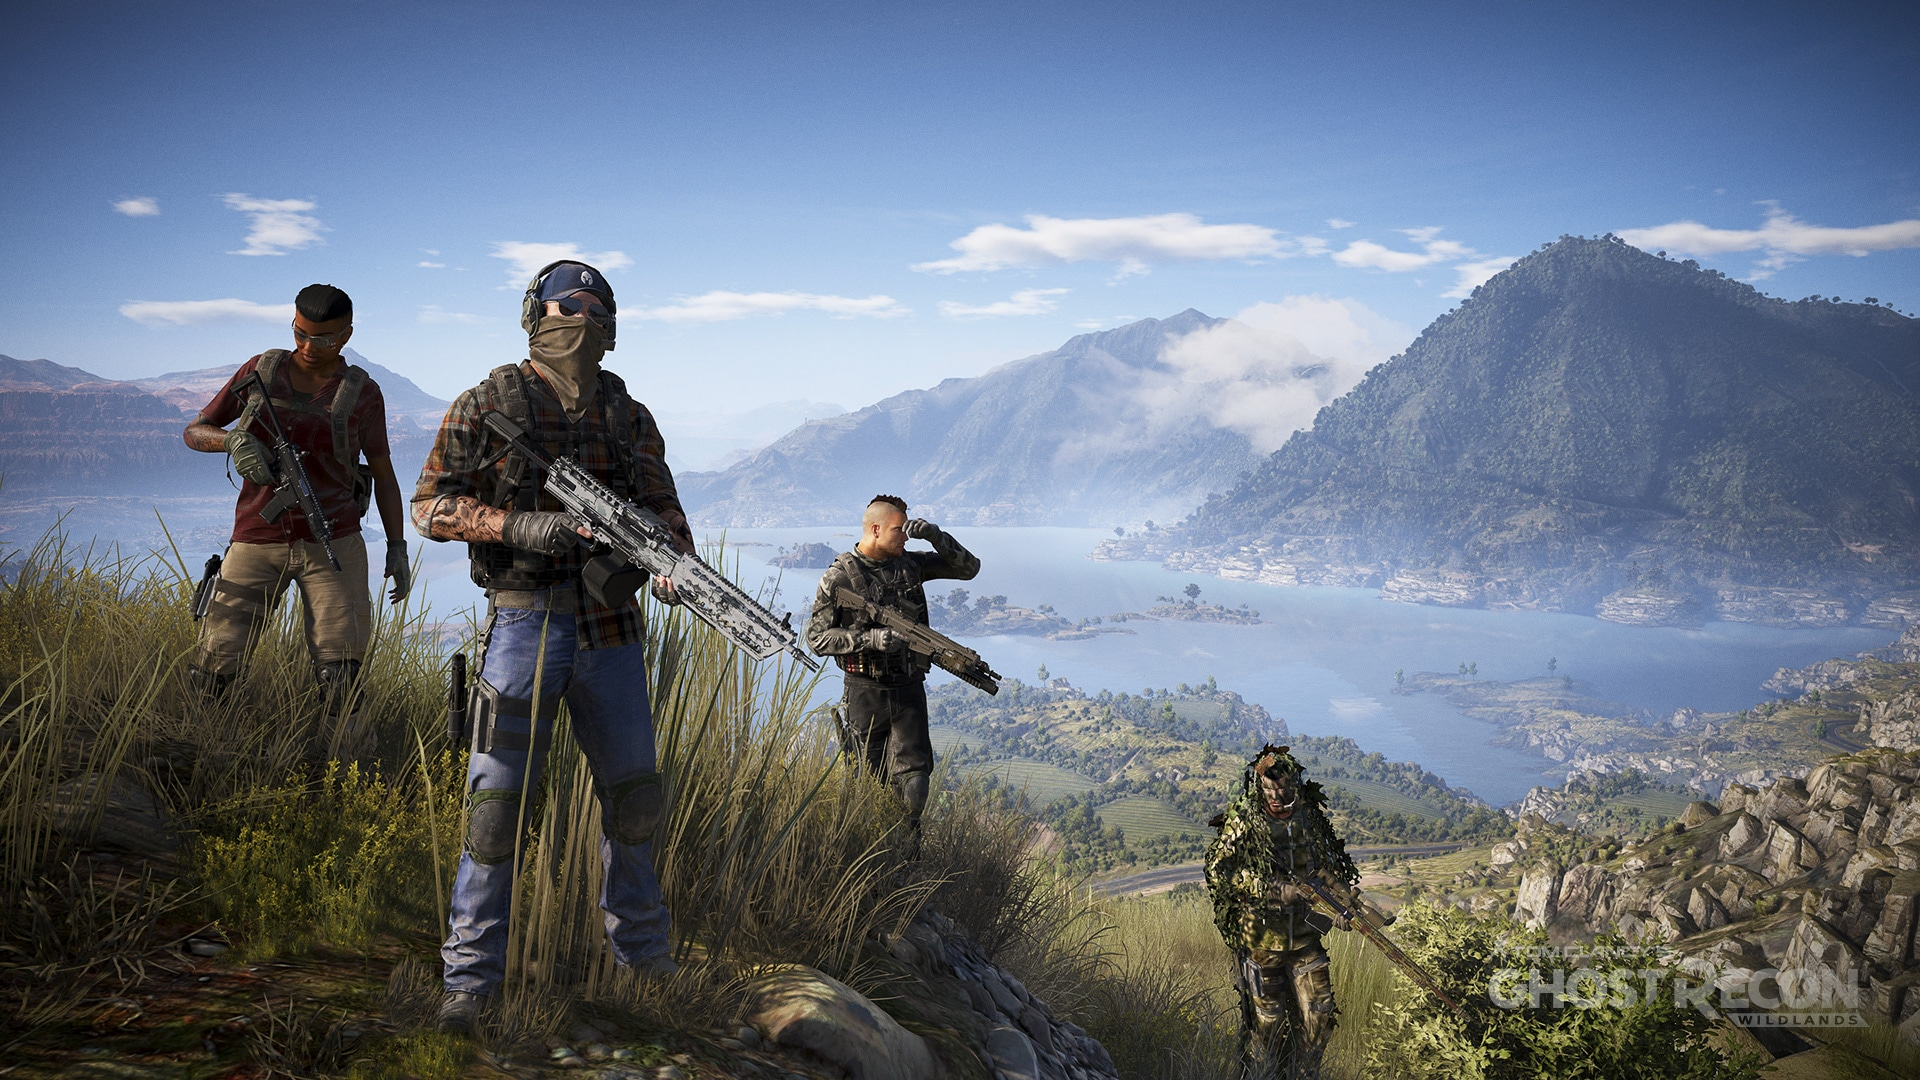 [2017-02-16] Ghost Recon Open Beta announce GRW_Gamescom_Screenshot_1920x1080_H.jpg